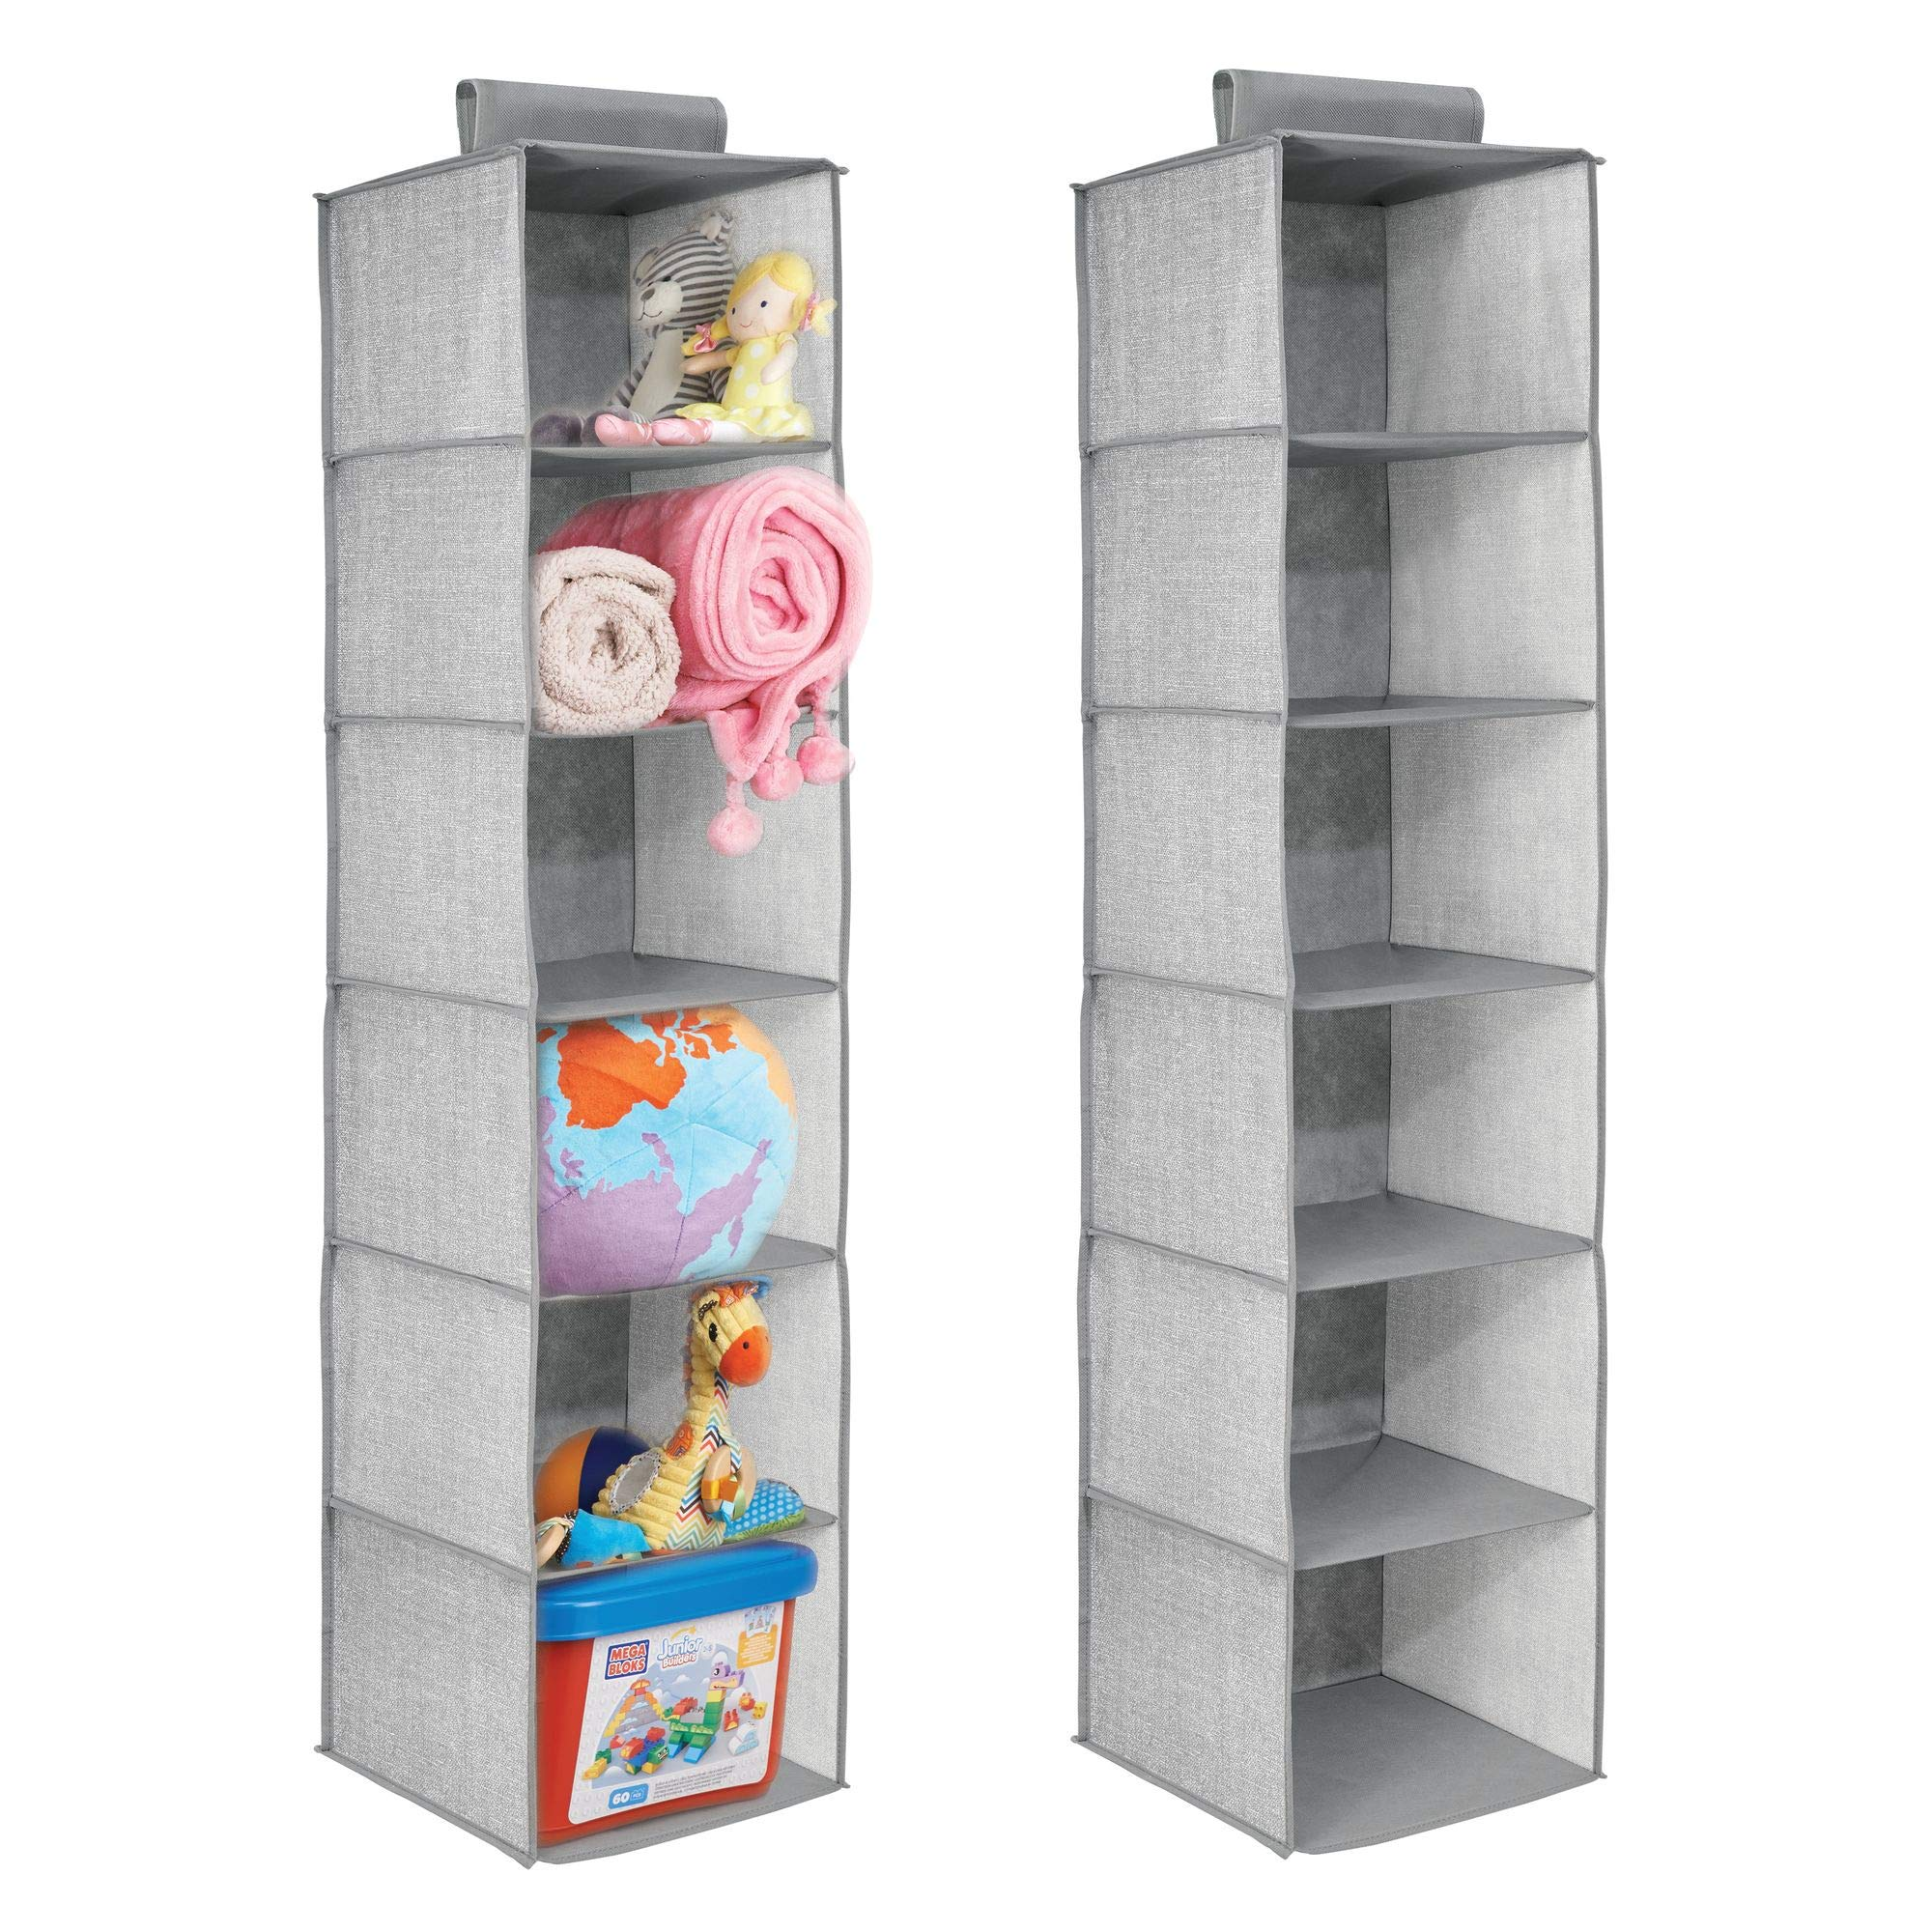 mDesign Long Soft Fabric Over Closet Rod Hanging Storage Organizer with 6 Shelves for Child/Kids Room or Nursery - Textured Print, 2 Pack - Gray by mDesign